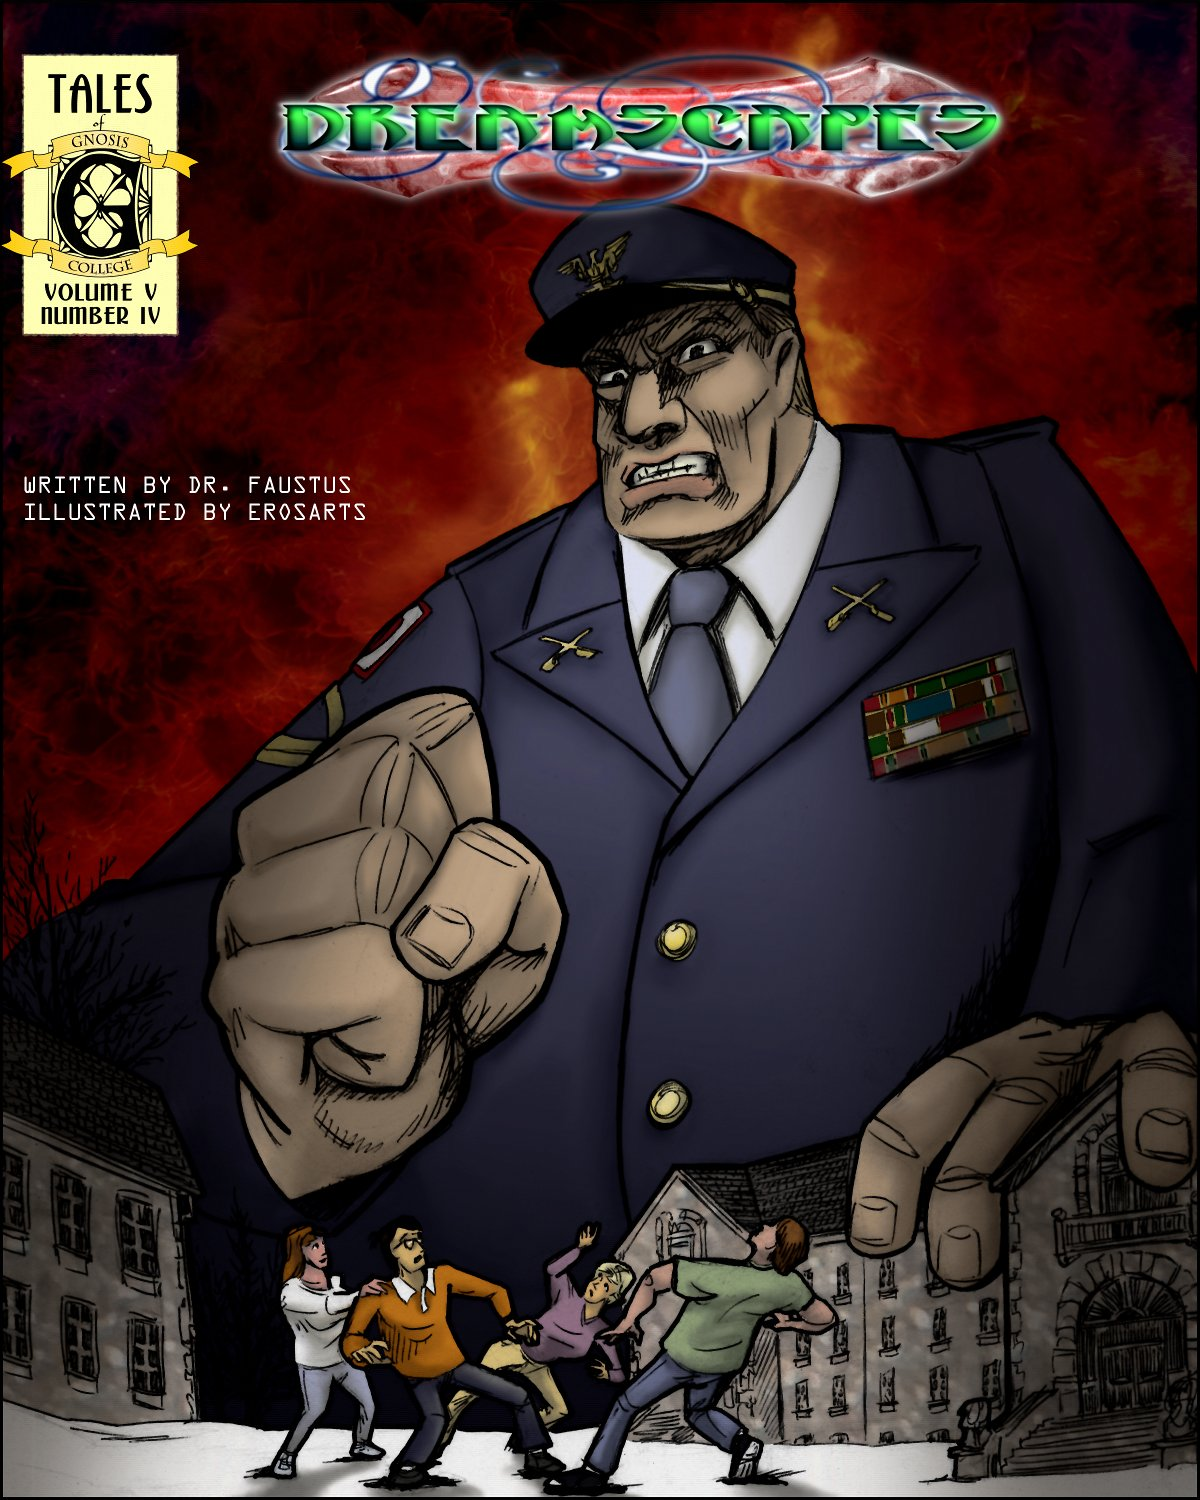 The giant fist of Colonel Madder reaches down to crush our heroes!